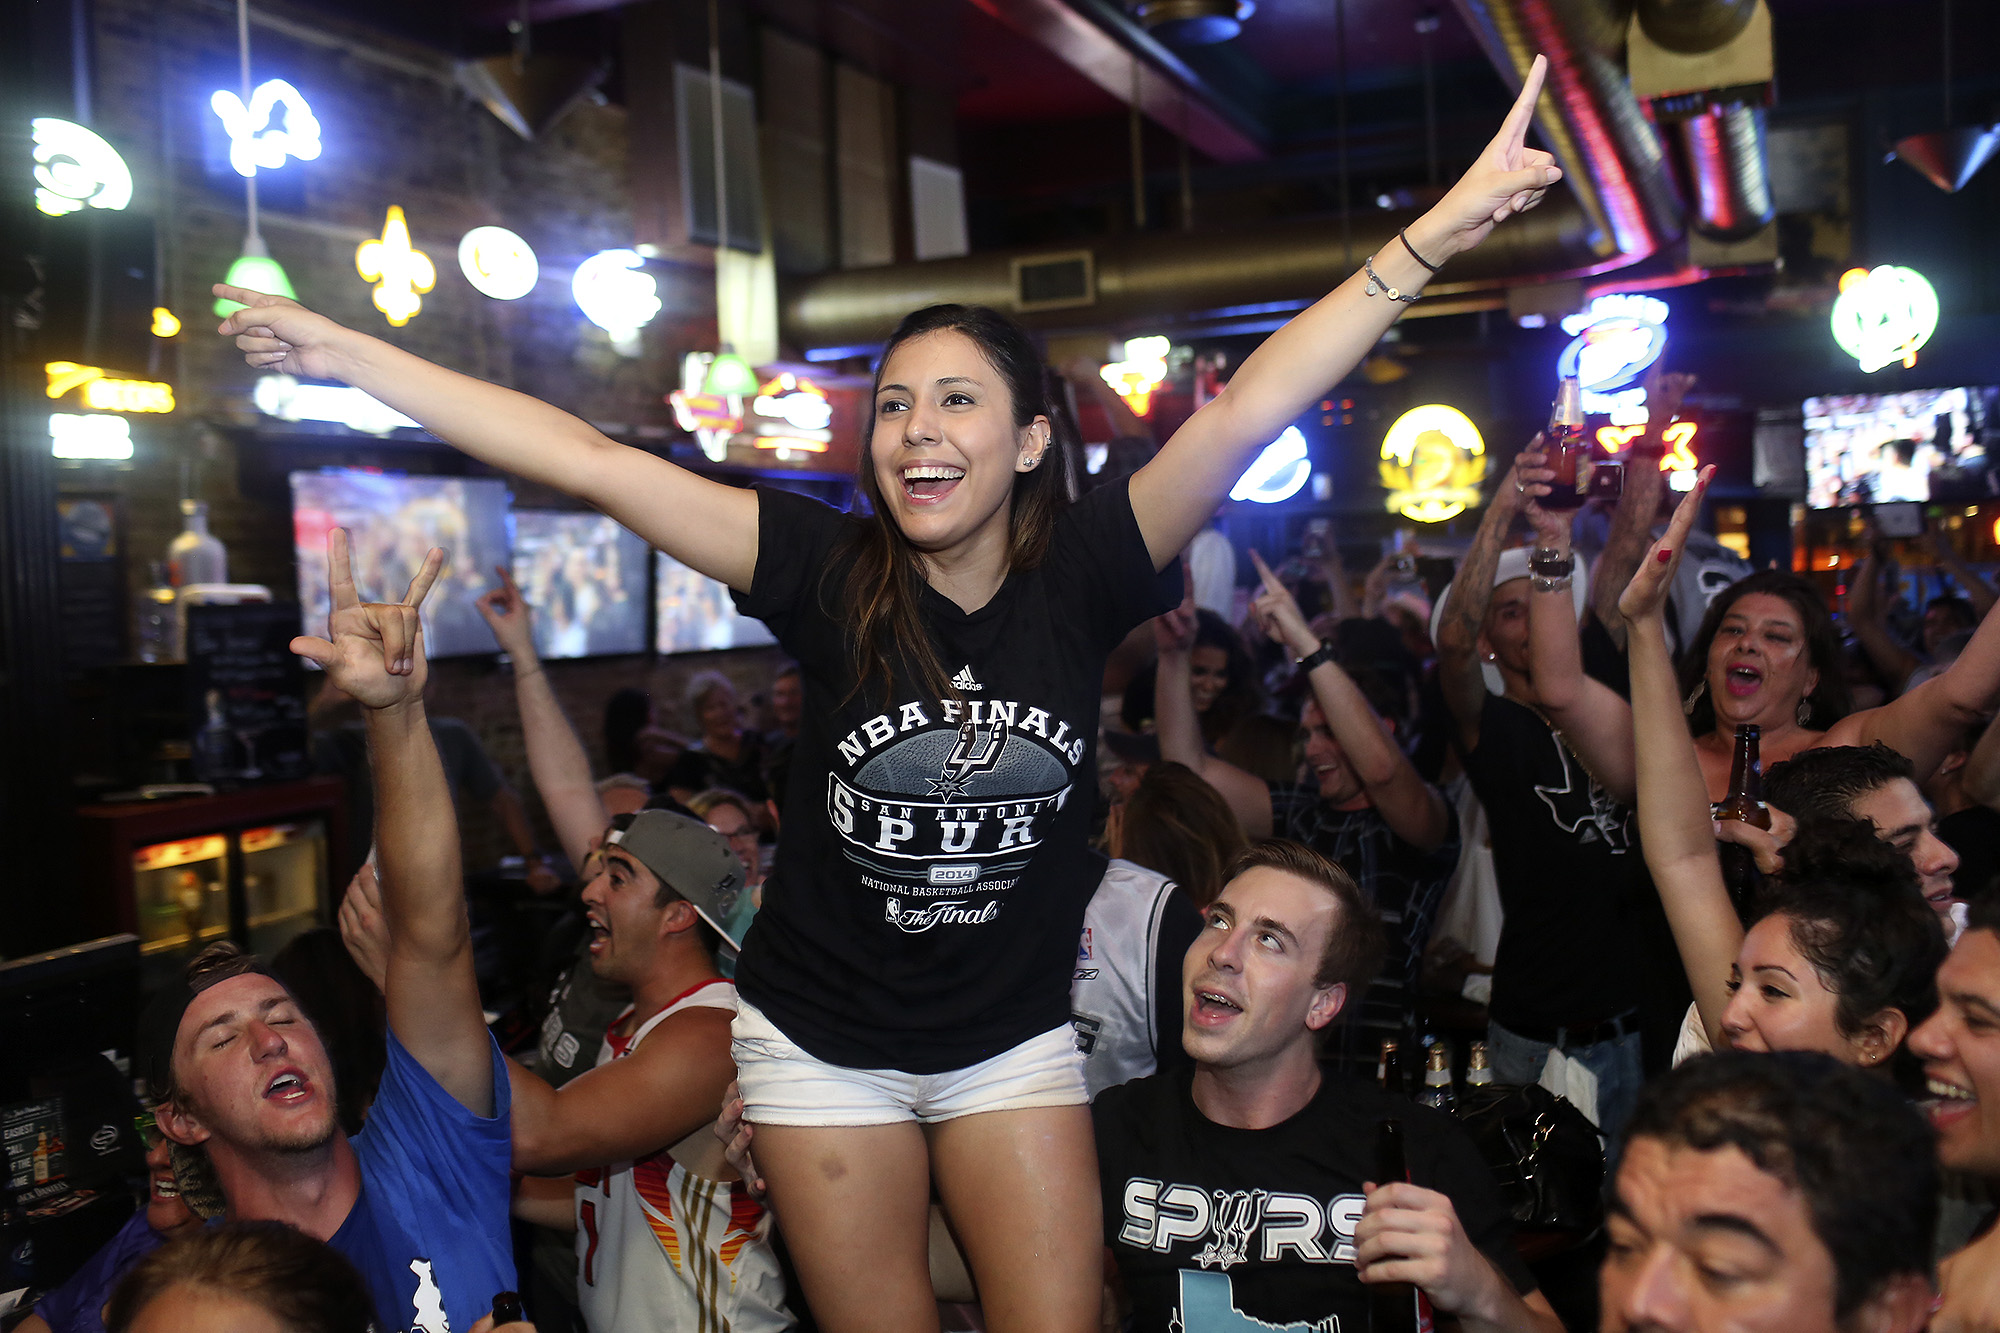 Usaa Contact Us >> Spurs fans watch Game 5, celebrate win around S.A. - San ...